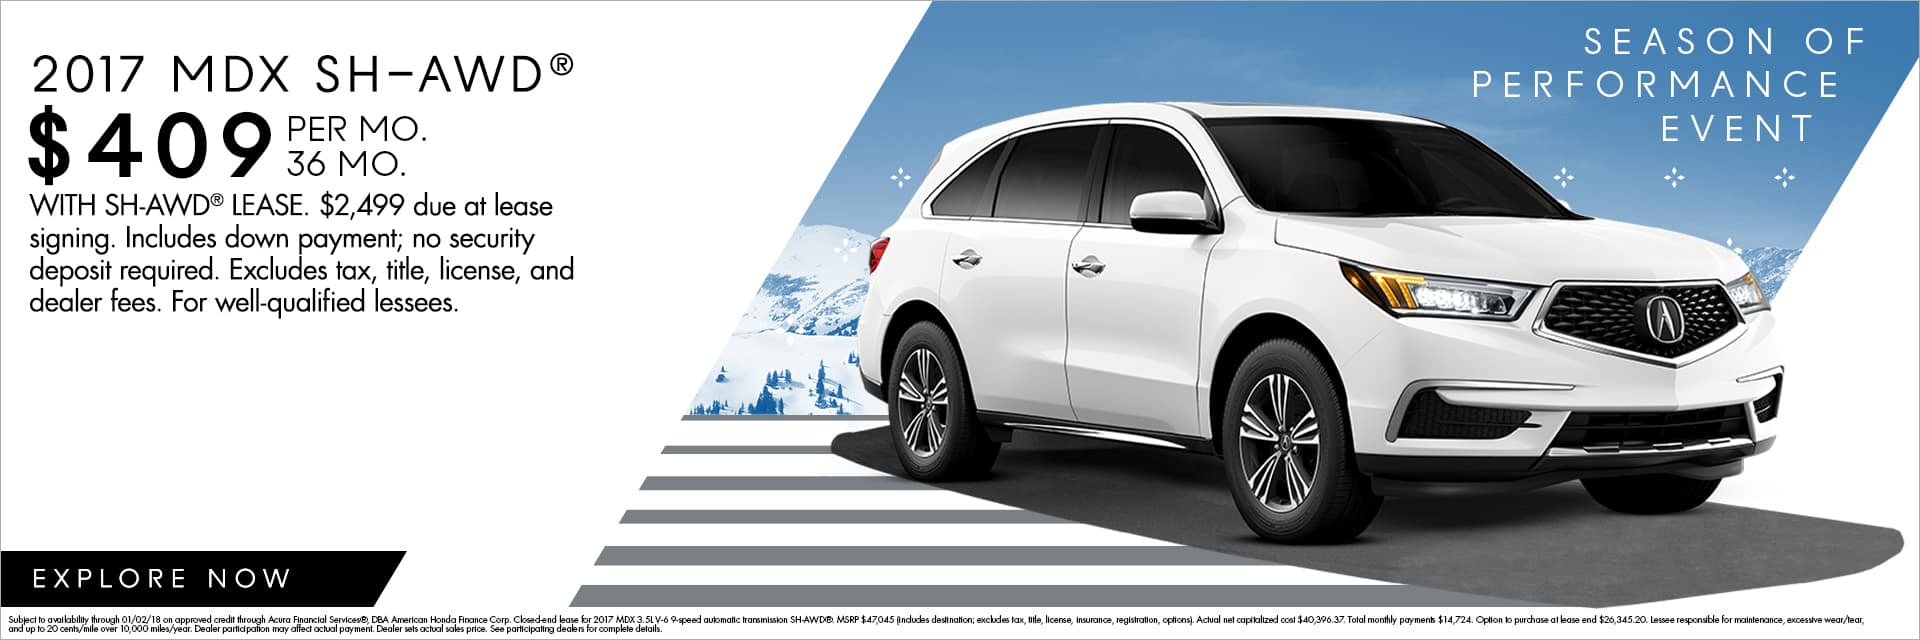 Unwrap Performance During Acura Of Fayettevilles Season Of - Lease an acura mdx